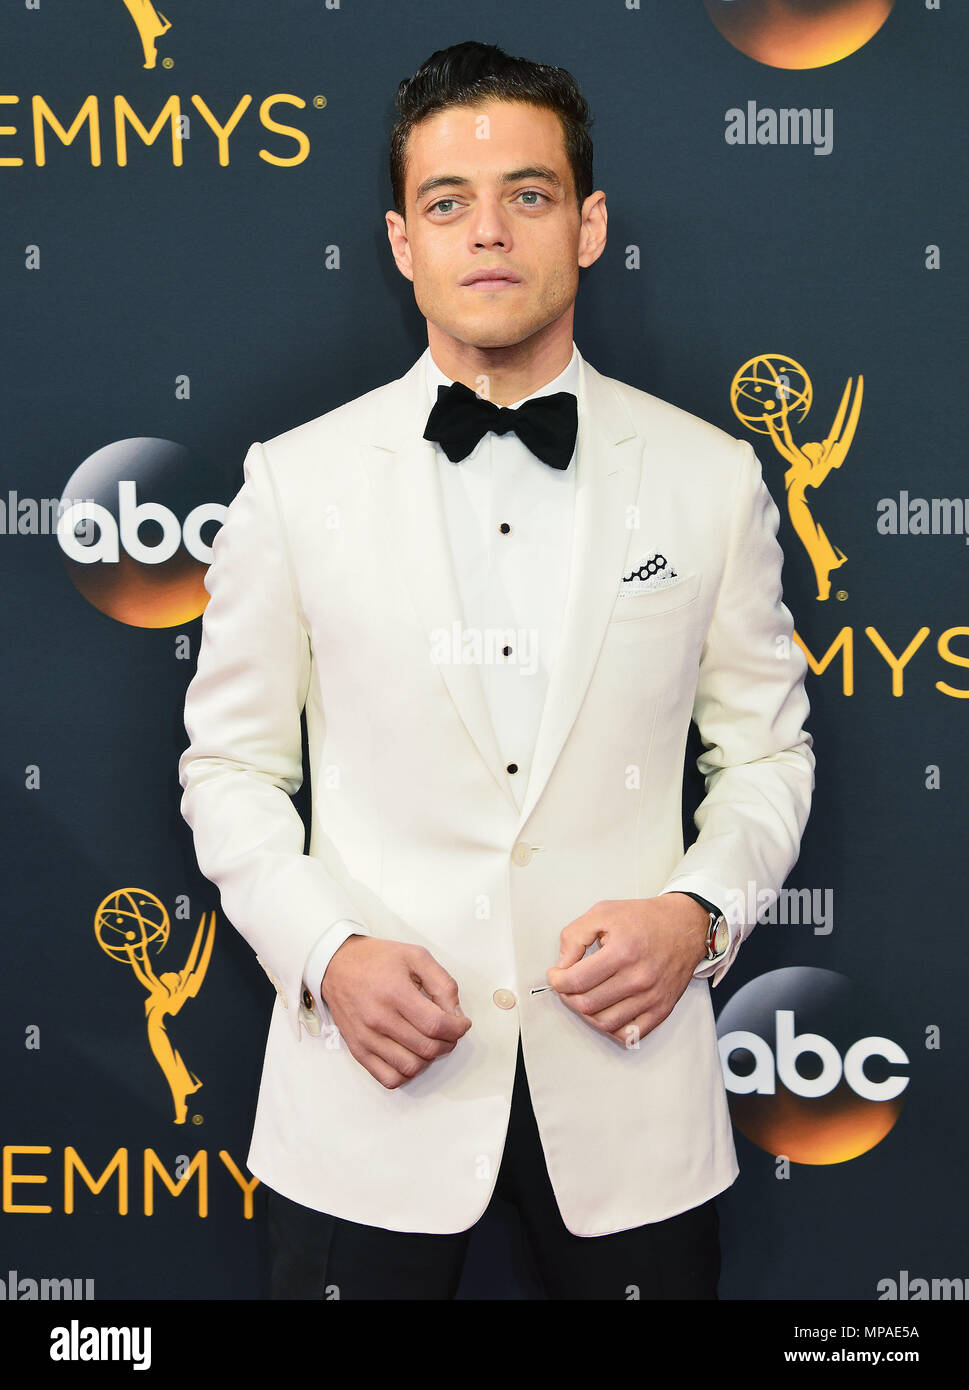 Arte Tv Film 18 Rami Malek 063 At The 68th Emmy Awards 2016 At The Microsoft